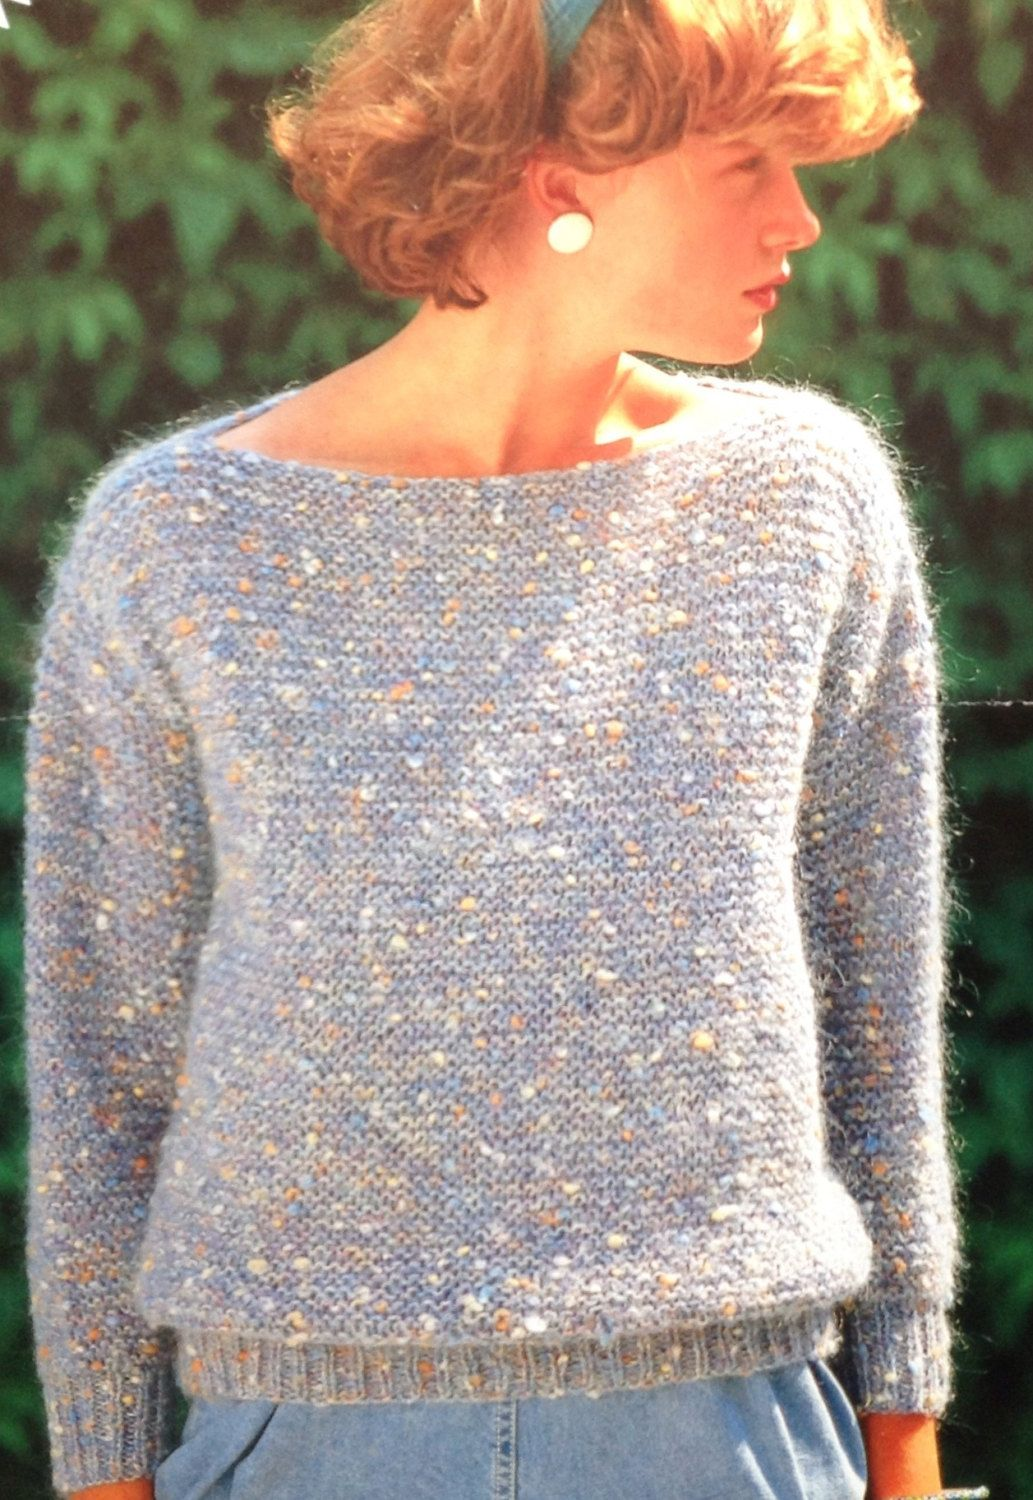 2ec2104910 This is a copy of the Original Pattern for Instant Download Easy Garter  Stitch Knitting Pattern Girls Ladies Womens Sweater Jumper Boat Neck size  30-40in ...